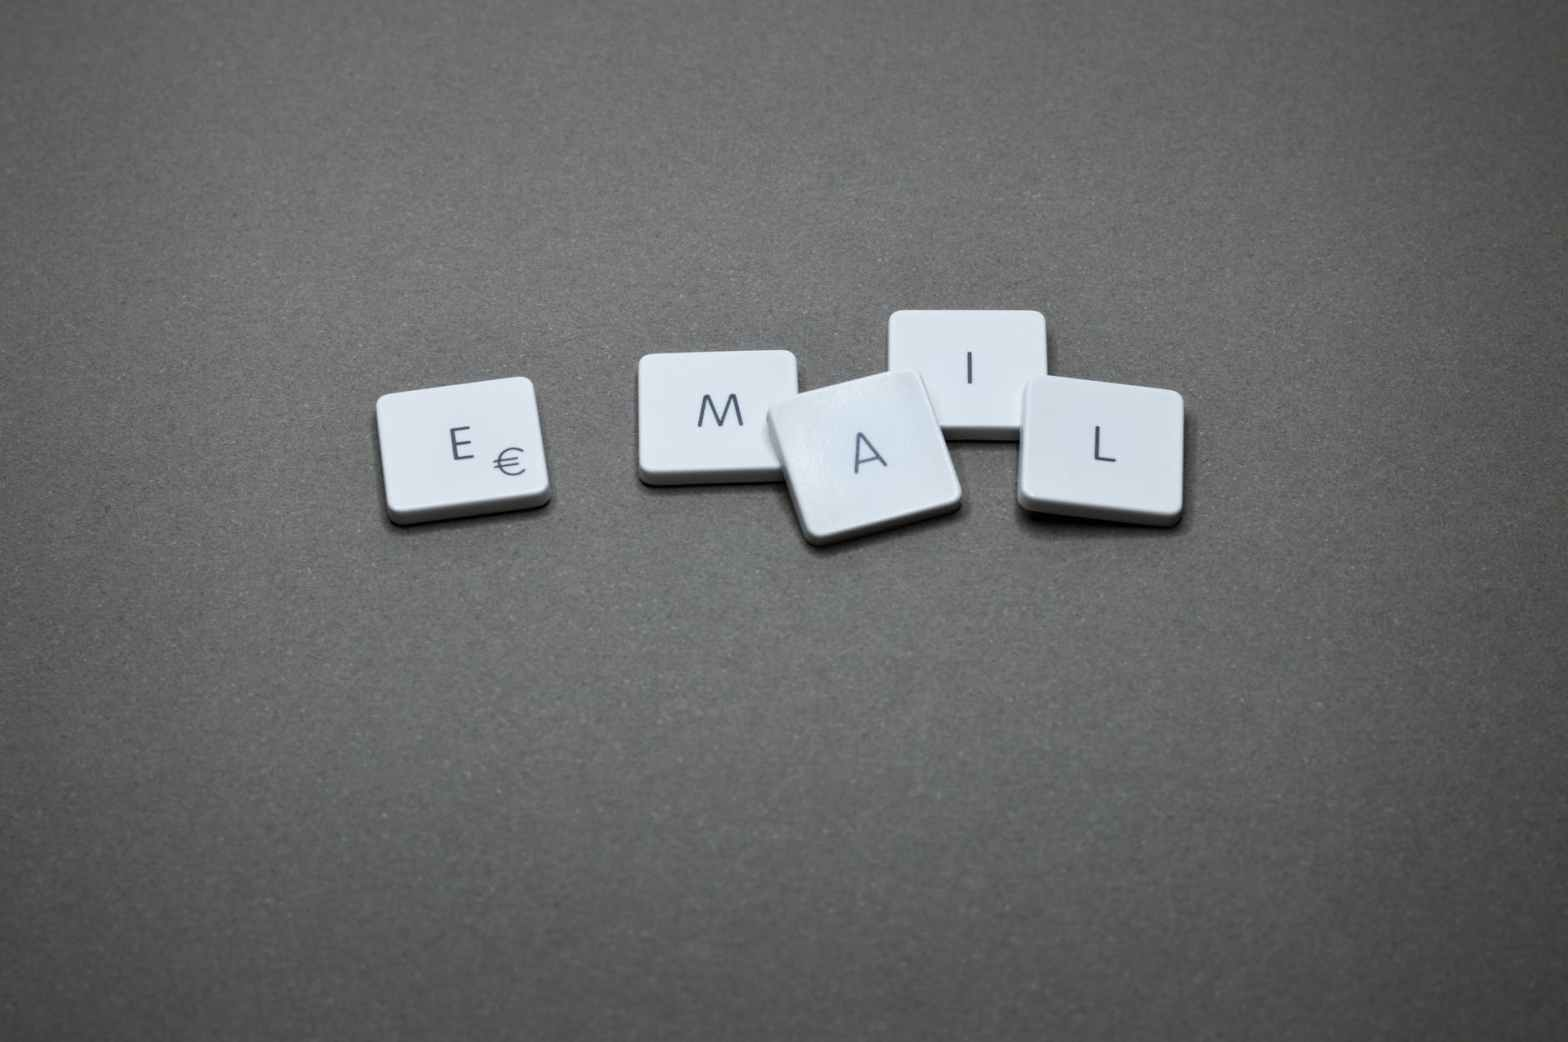 email marketing spelled in scrabble letters